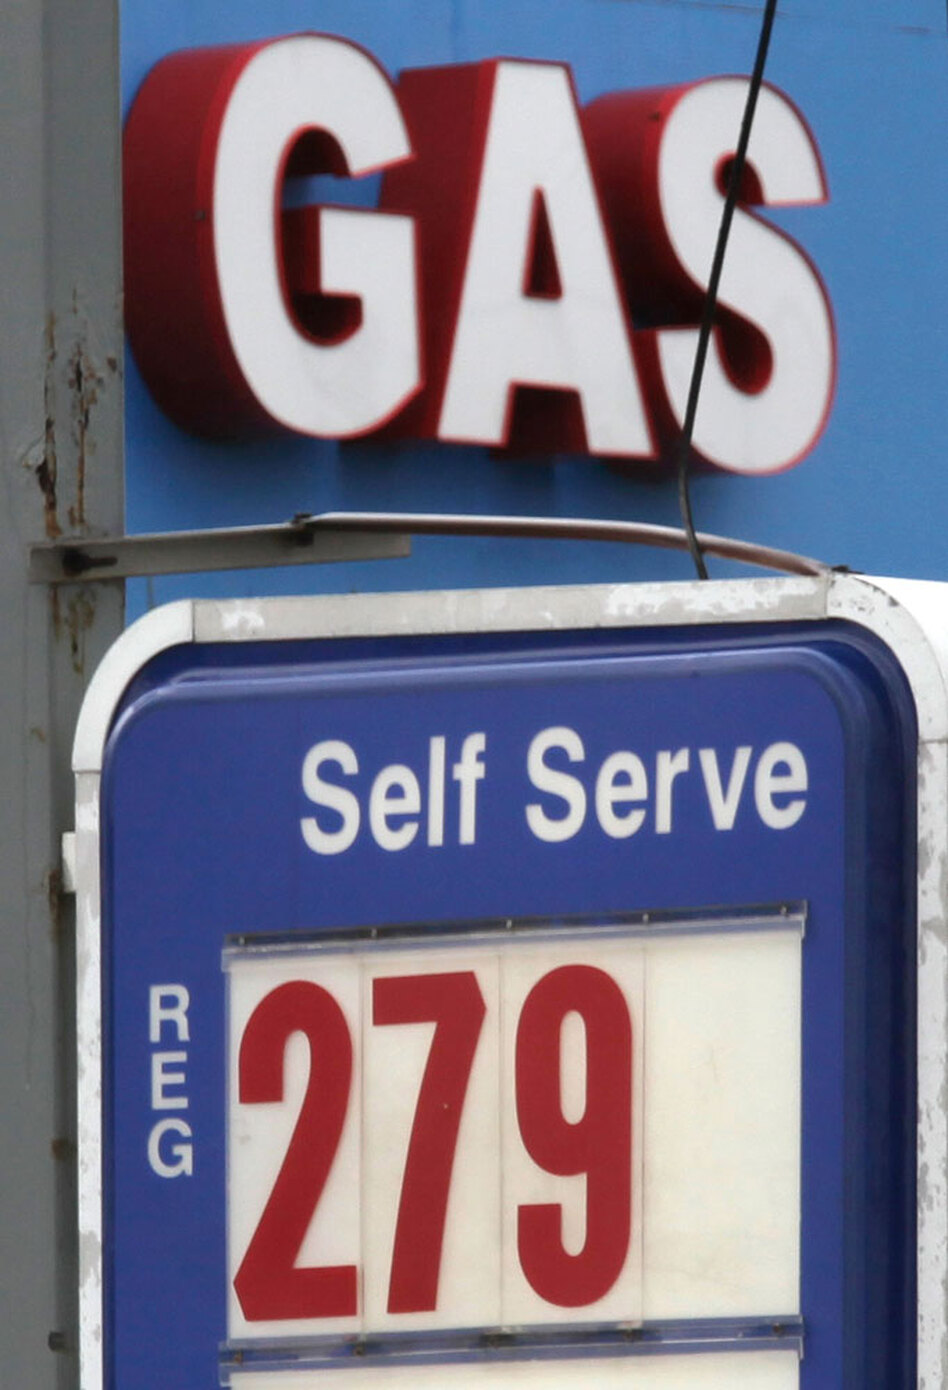 Gasoline prices dropped 2.4 percent in April. Analysts said they expect further declines amid a sharp drop in crude oil prices.